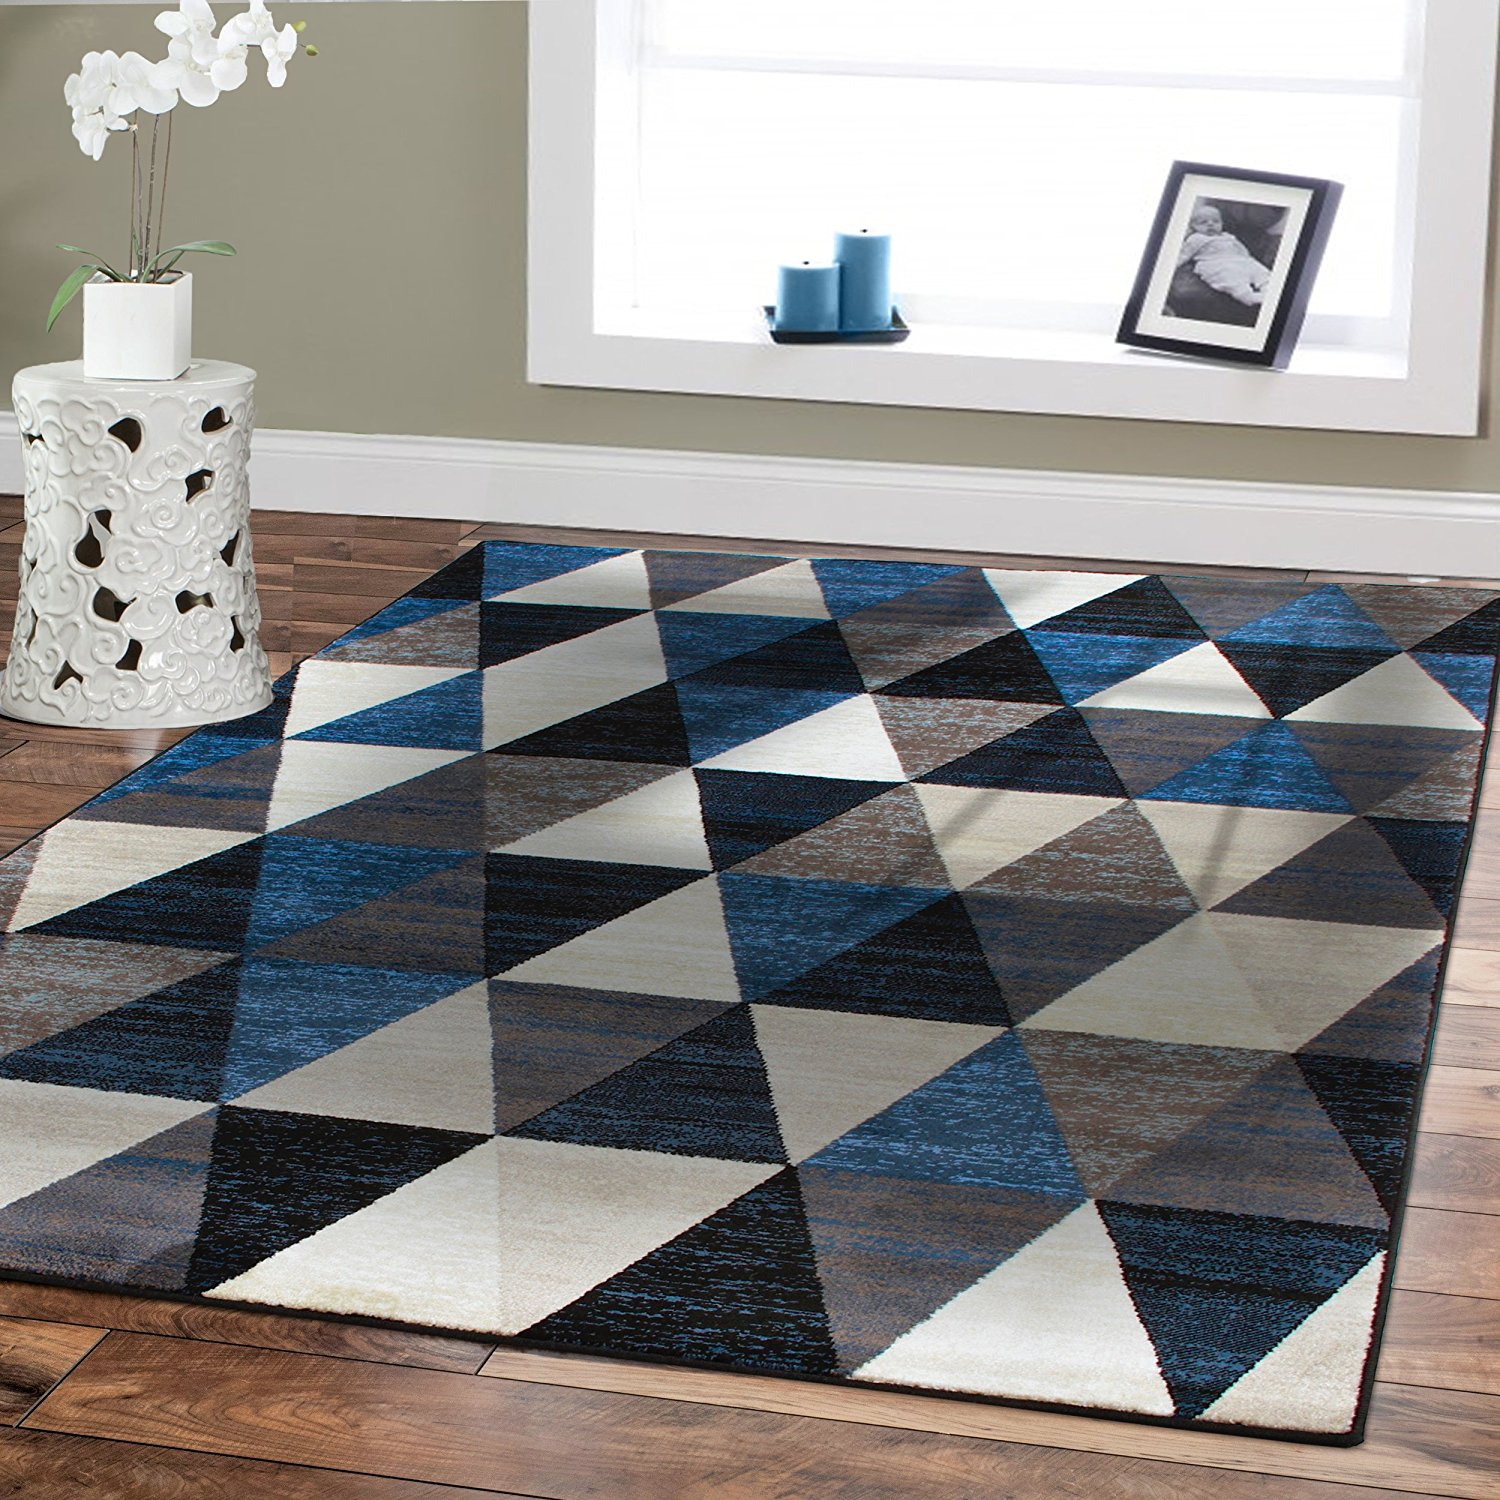 Cheap and quality carpets amazon.com: premium large rugs 8x11 modern rugs for brown sofa blue rugs OLSXHPJ